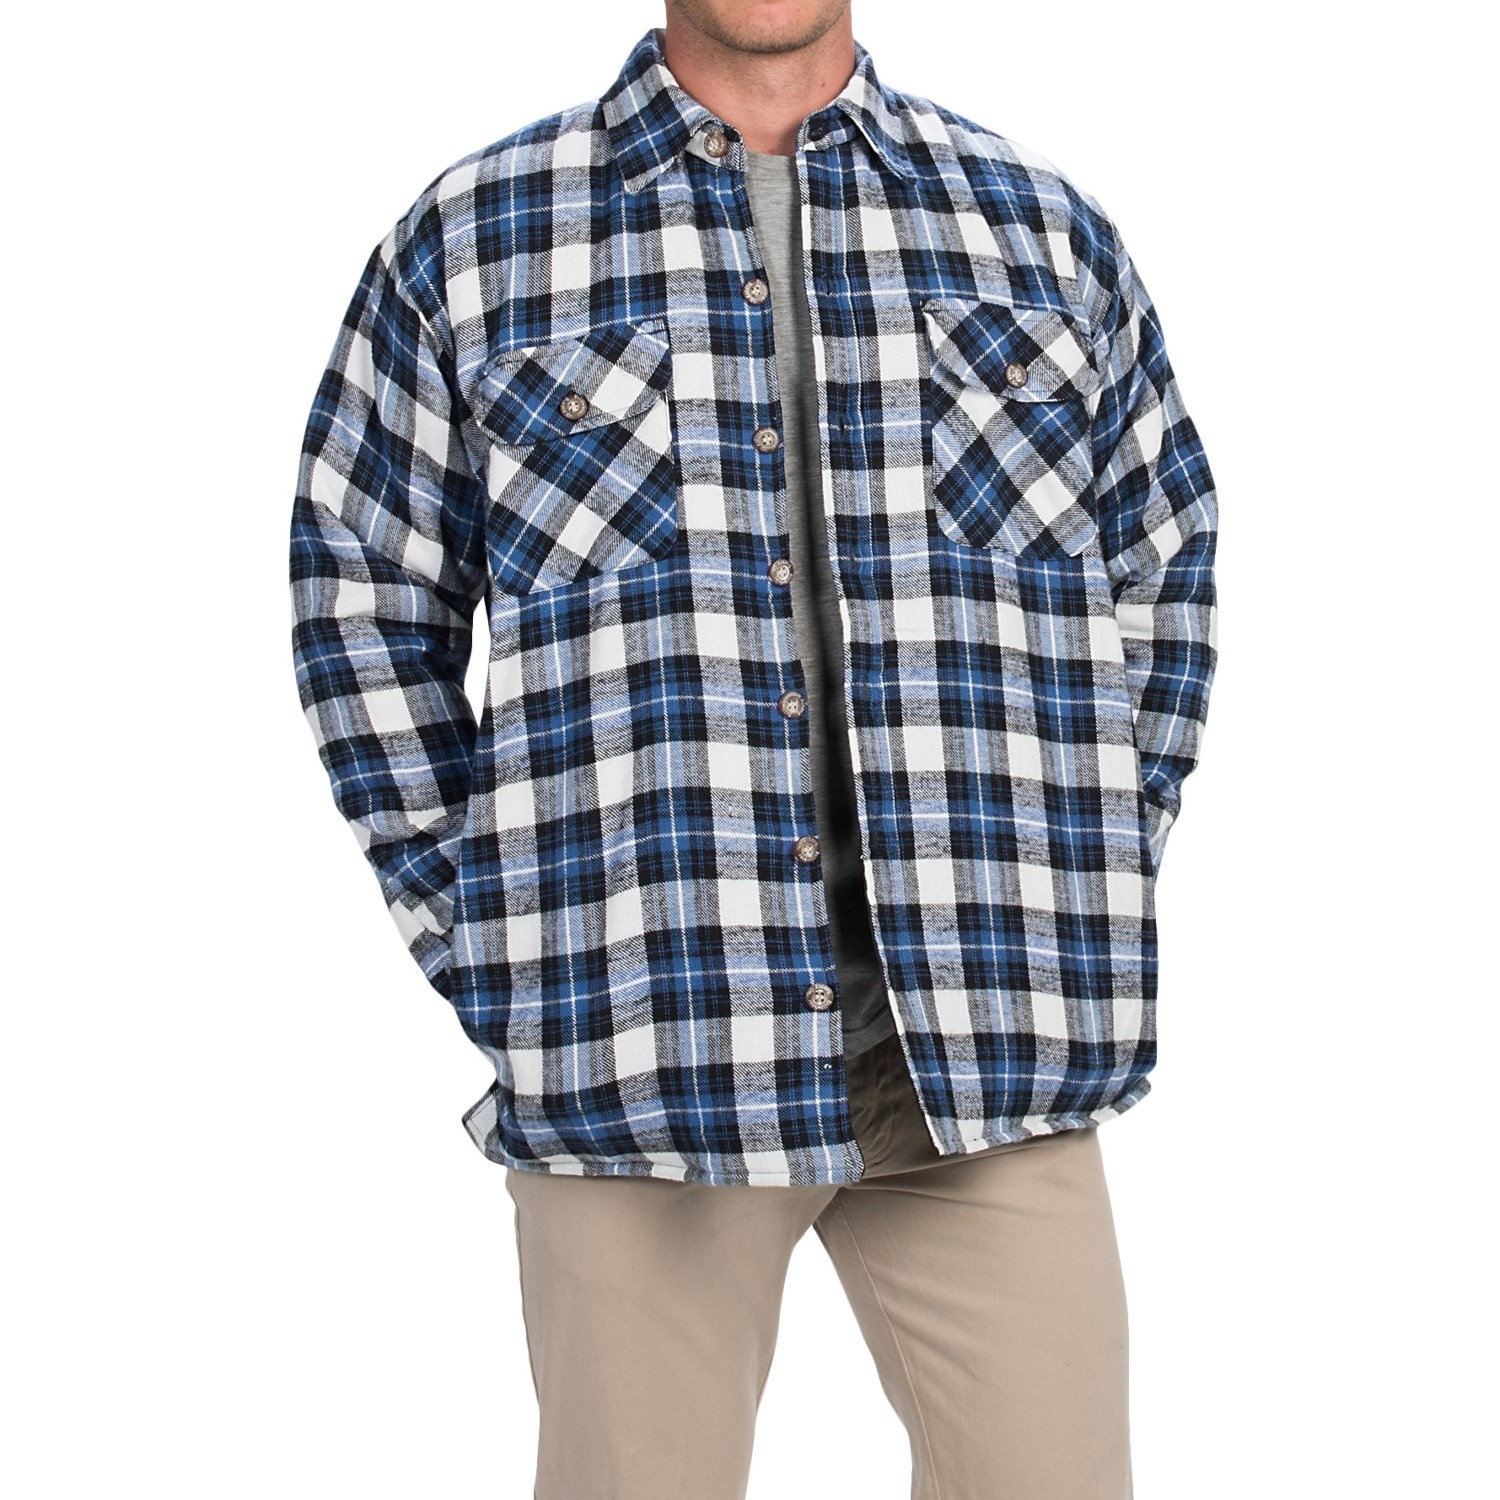 Stillwater supply co plaid shirt jacket for men save 76 for Plaid shirt jacket mens